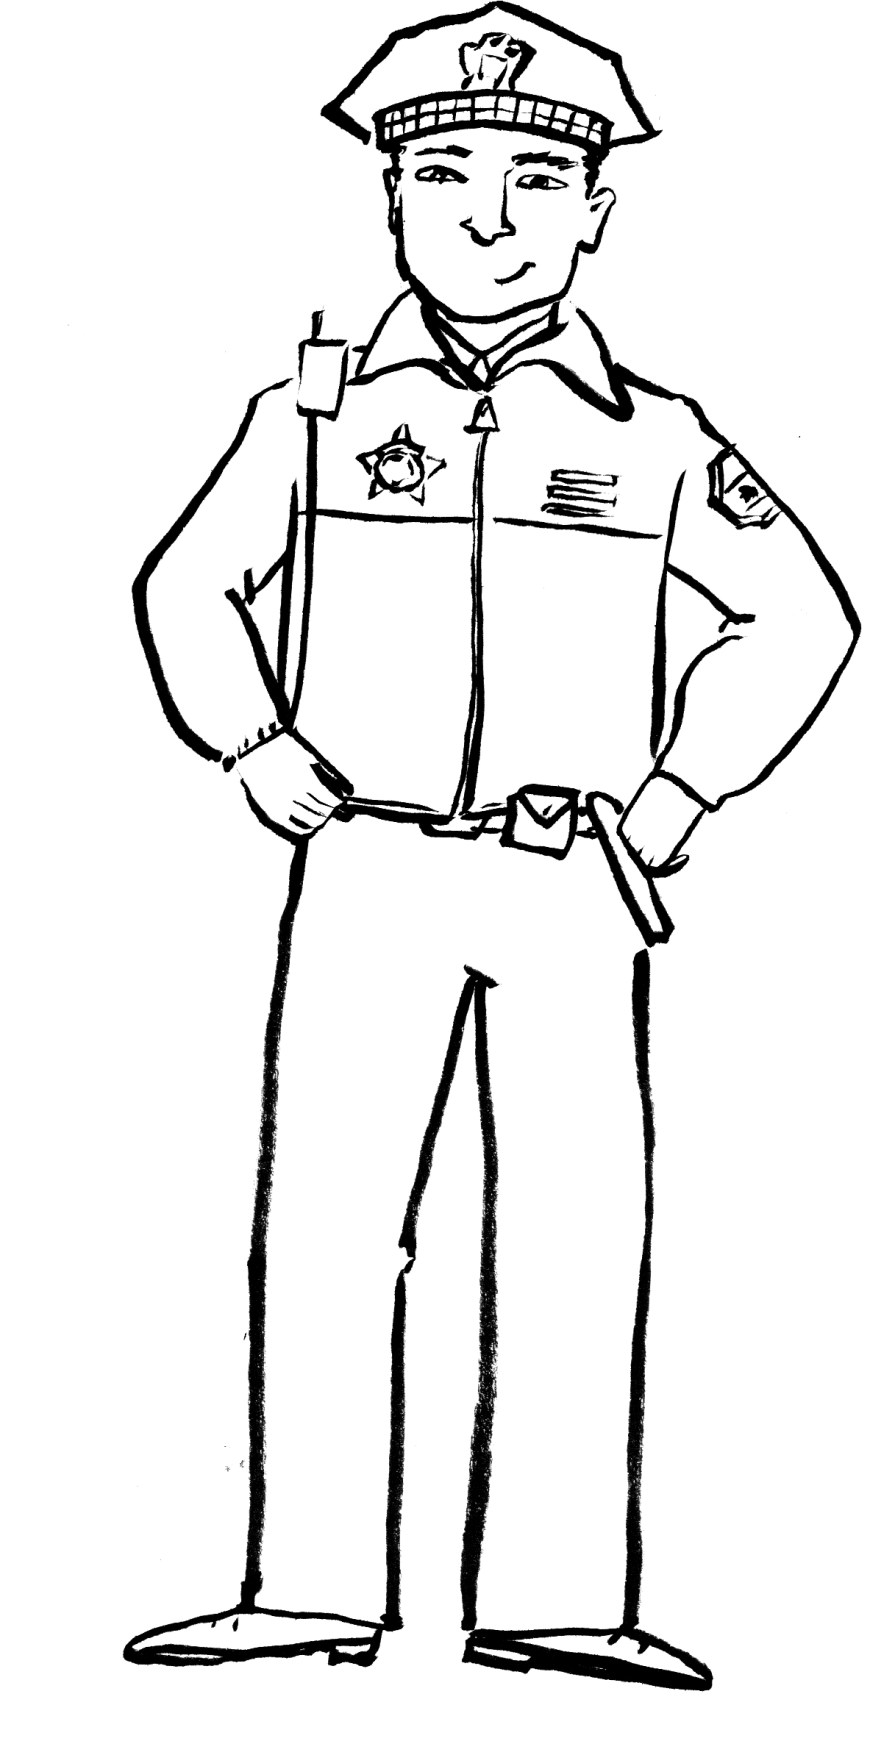 Police Officer Coloring Pages Police Officer Coloring Pages Coloring Pages